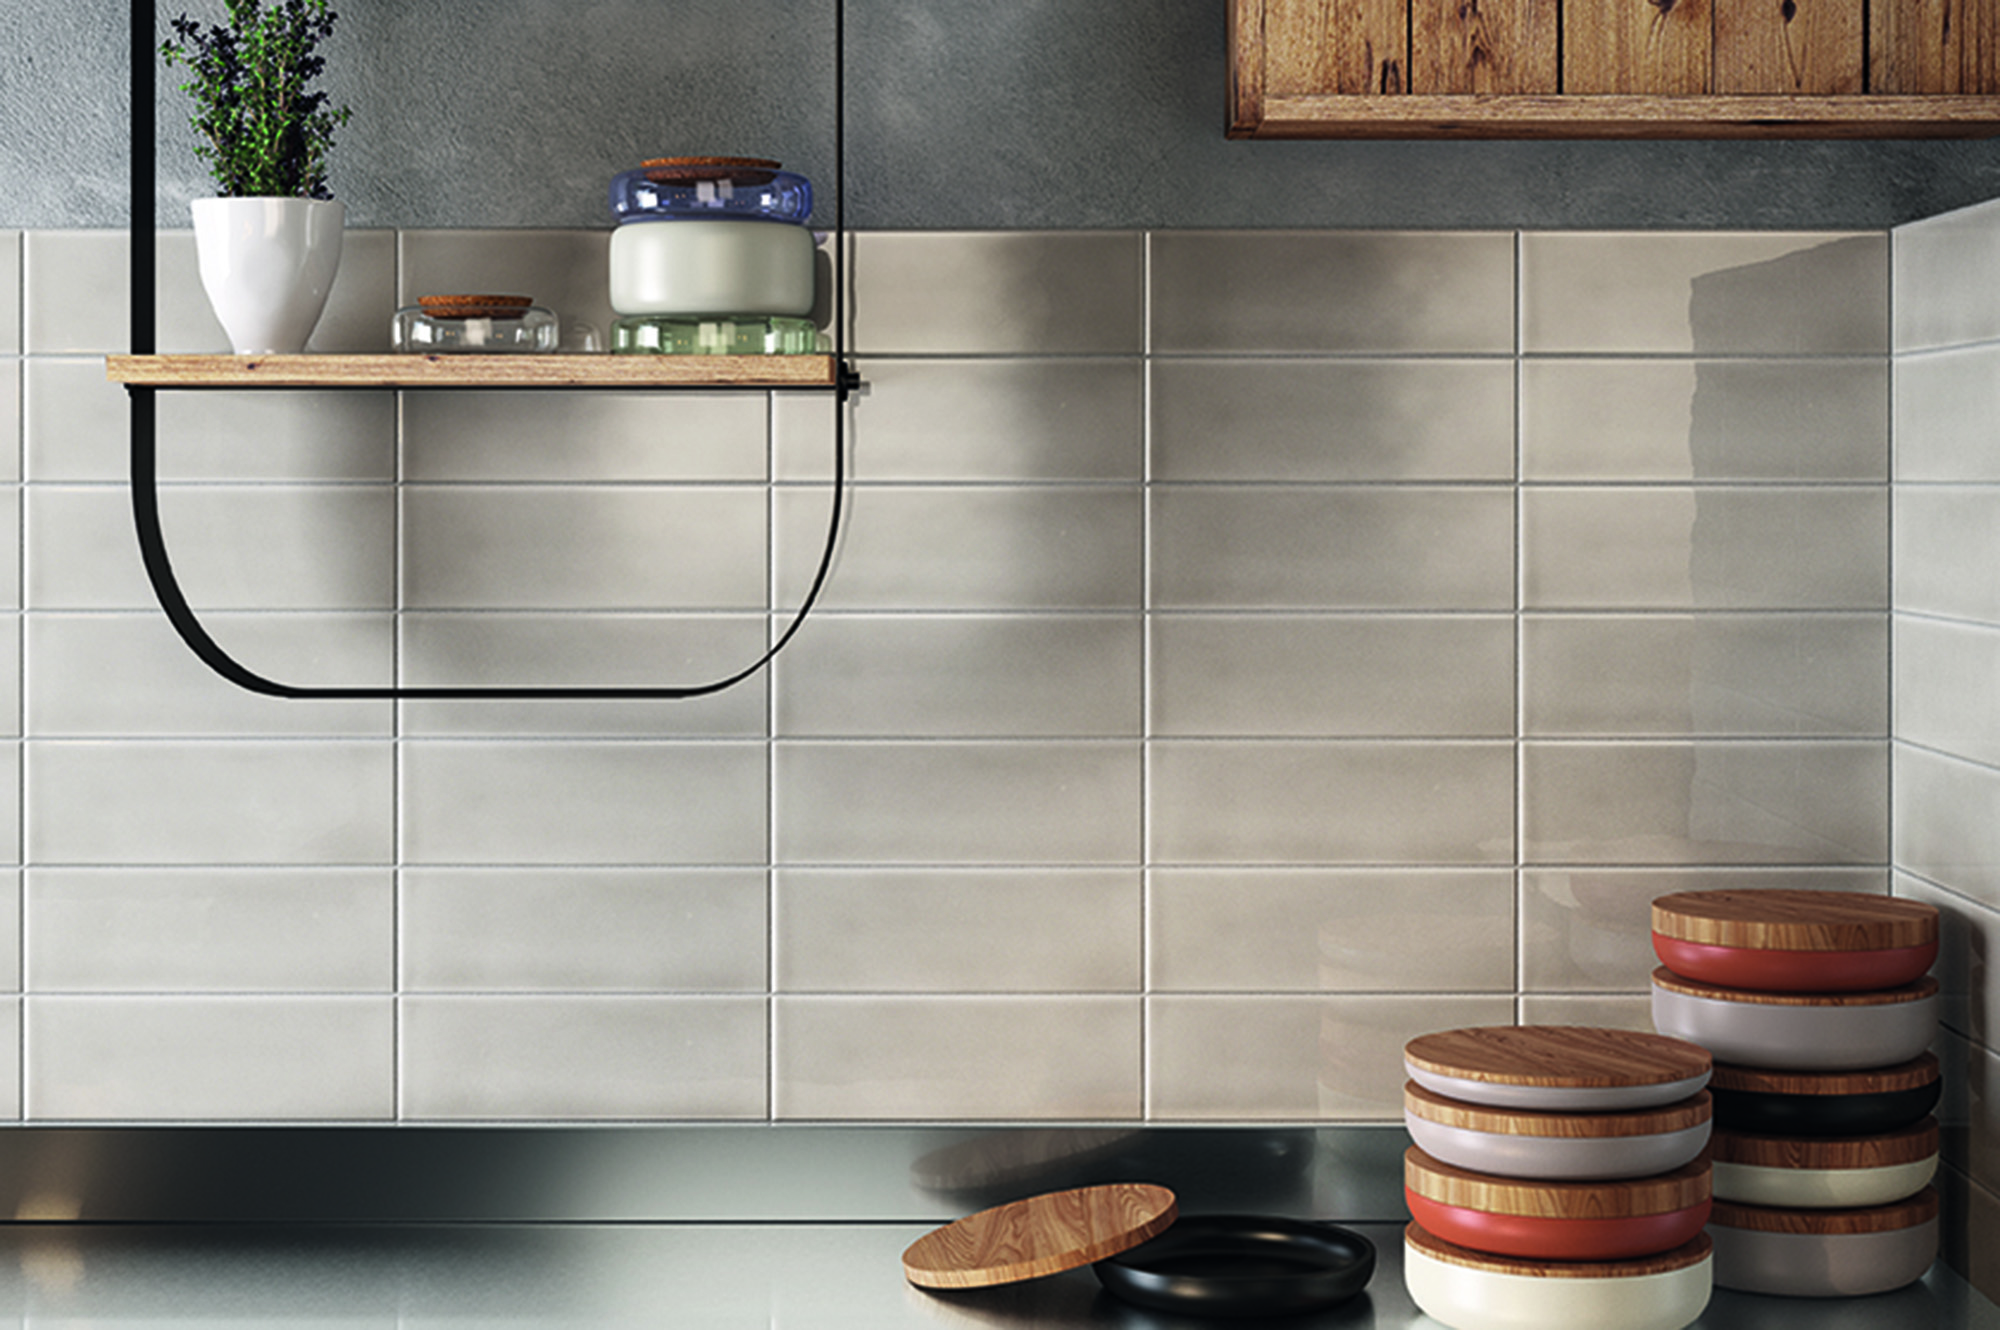 Kitchen Ceramic Tiles: Their Pros and Cons